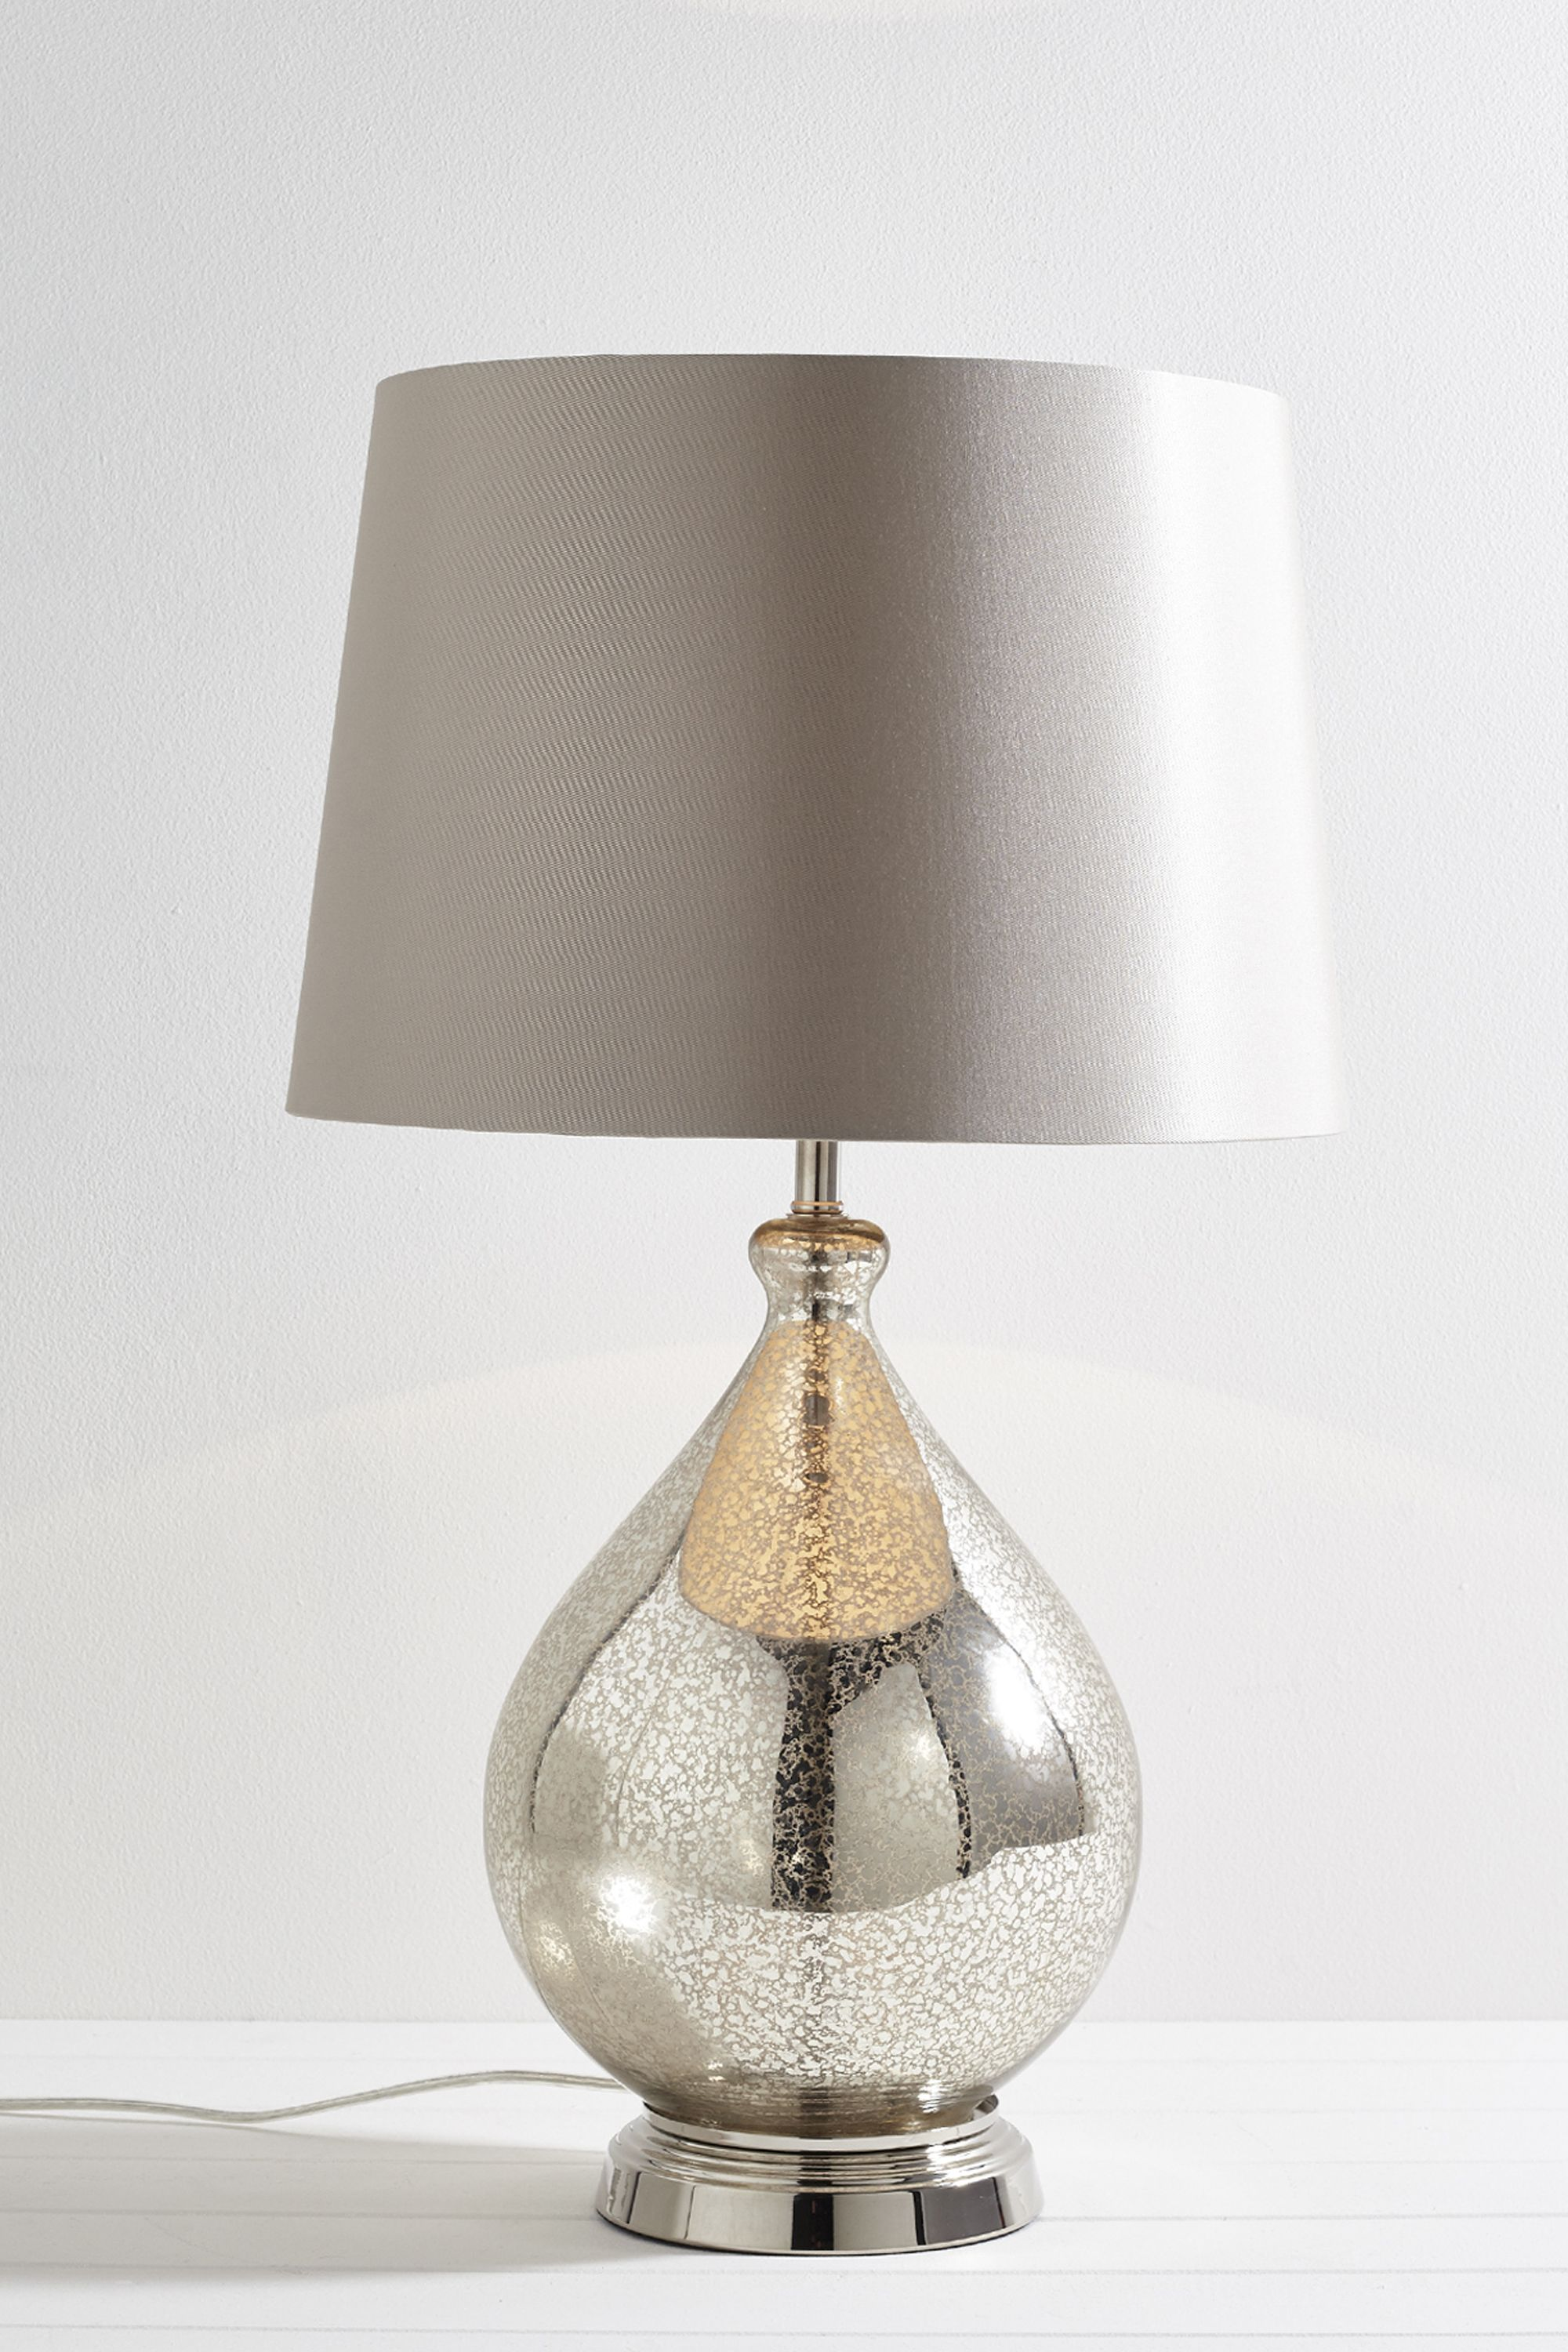 Chloe Table Lamp | Table Lamps | Lighting | Categories | BHS